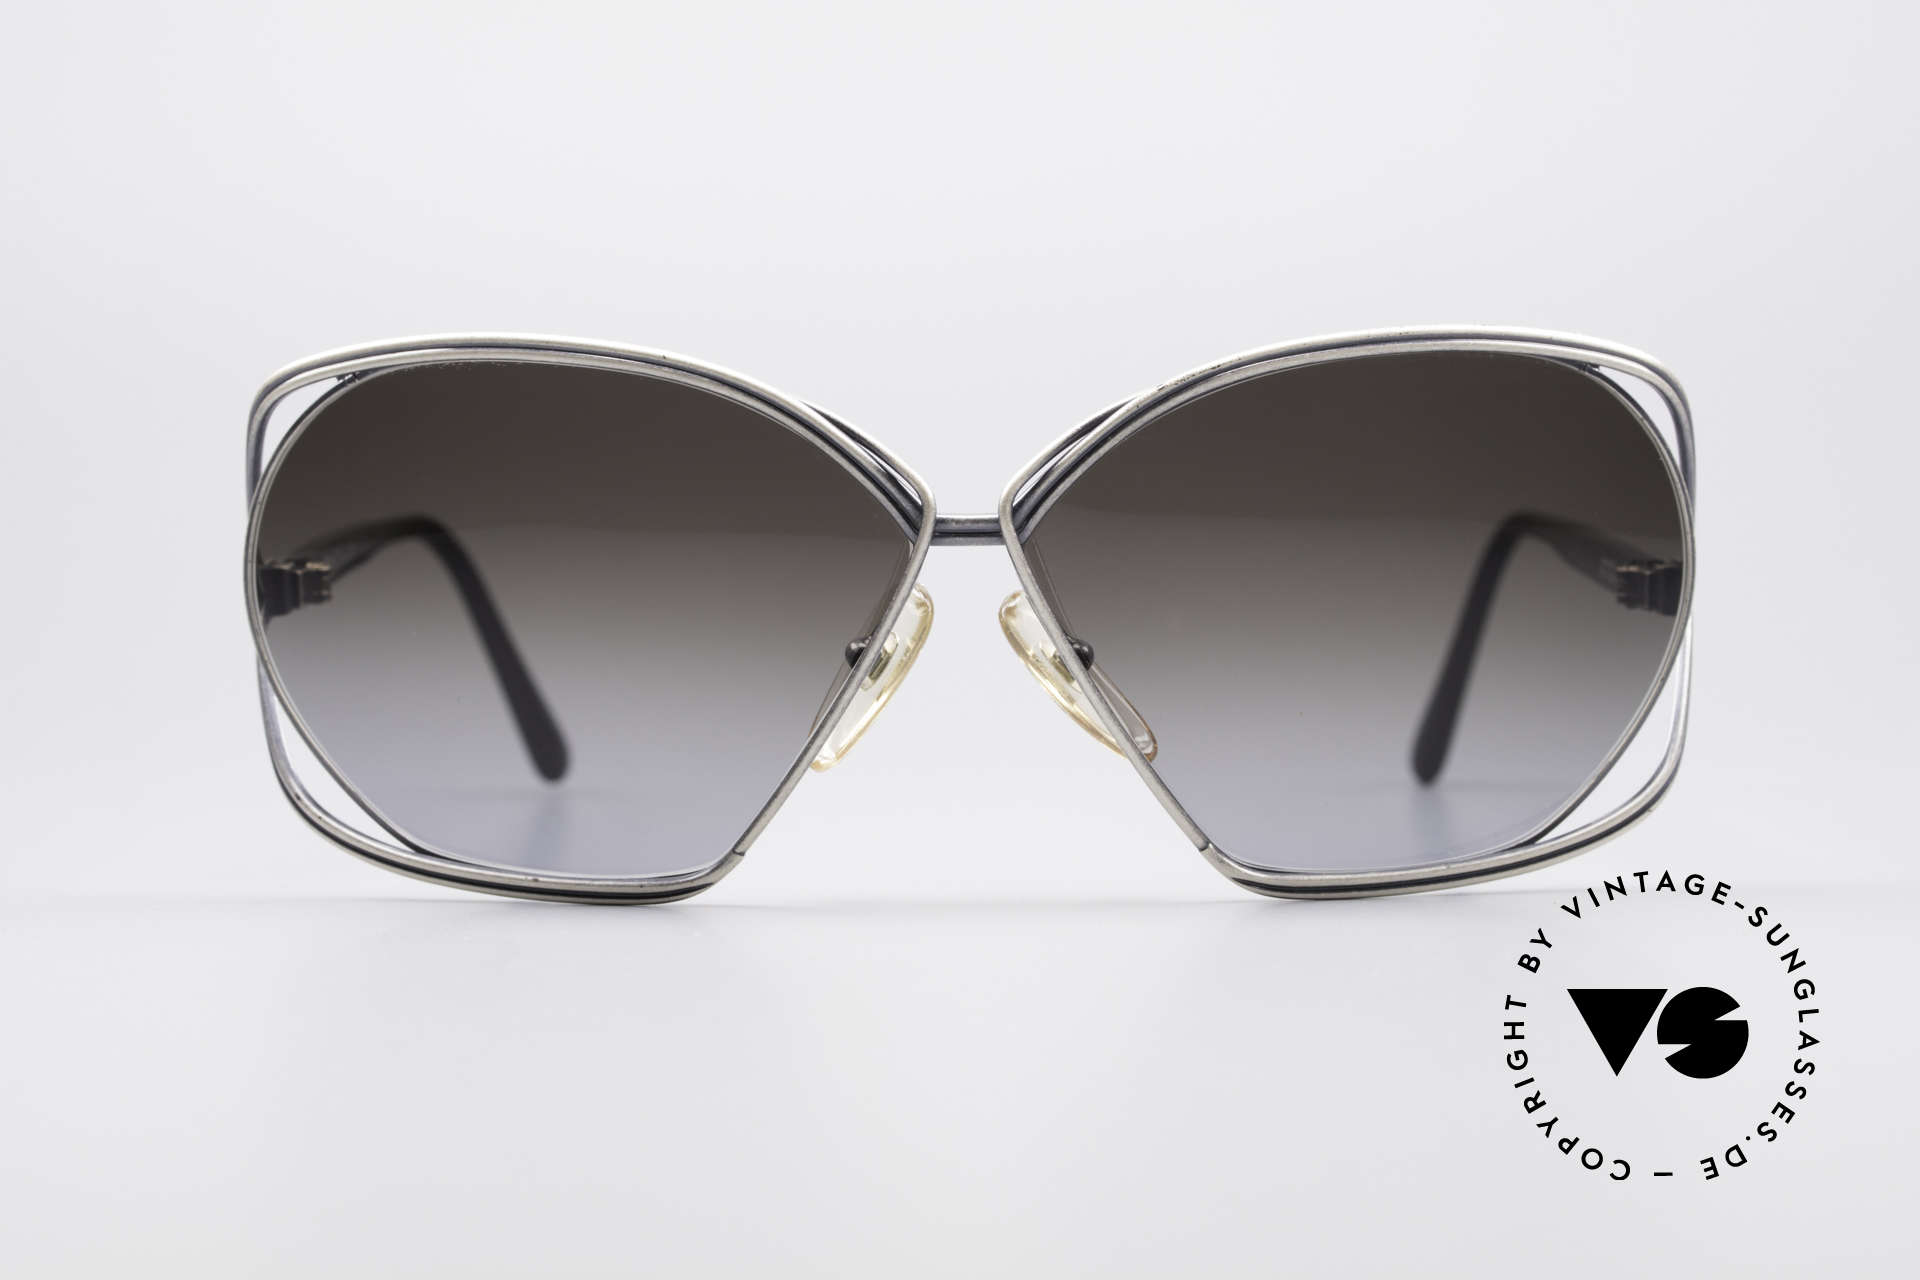 Christian Dior 2499 Ladies Sunglasses 80's, legendary 'butterfly-design' by famous Christian Dior, Made for Women